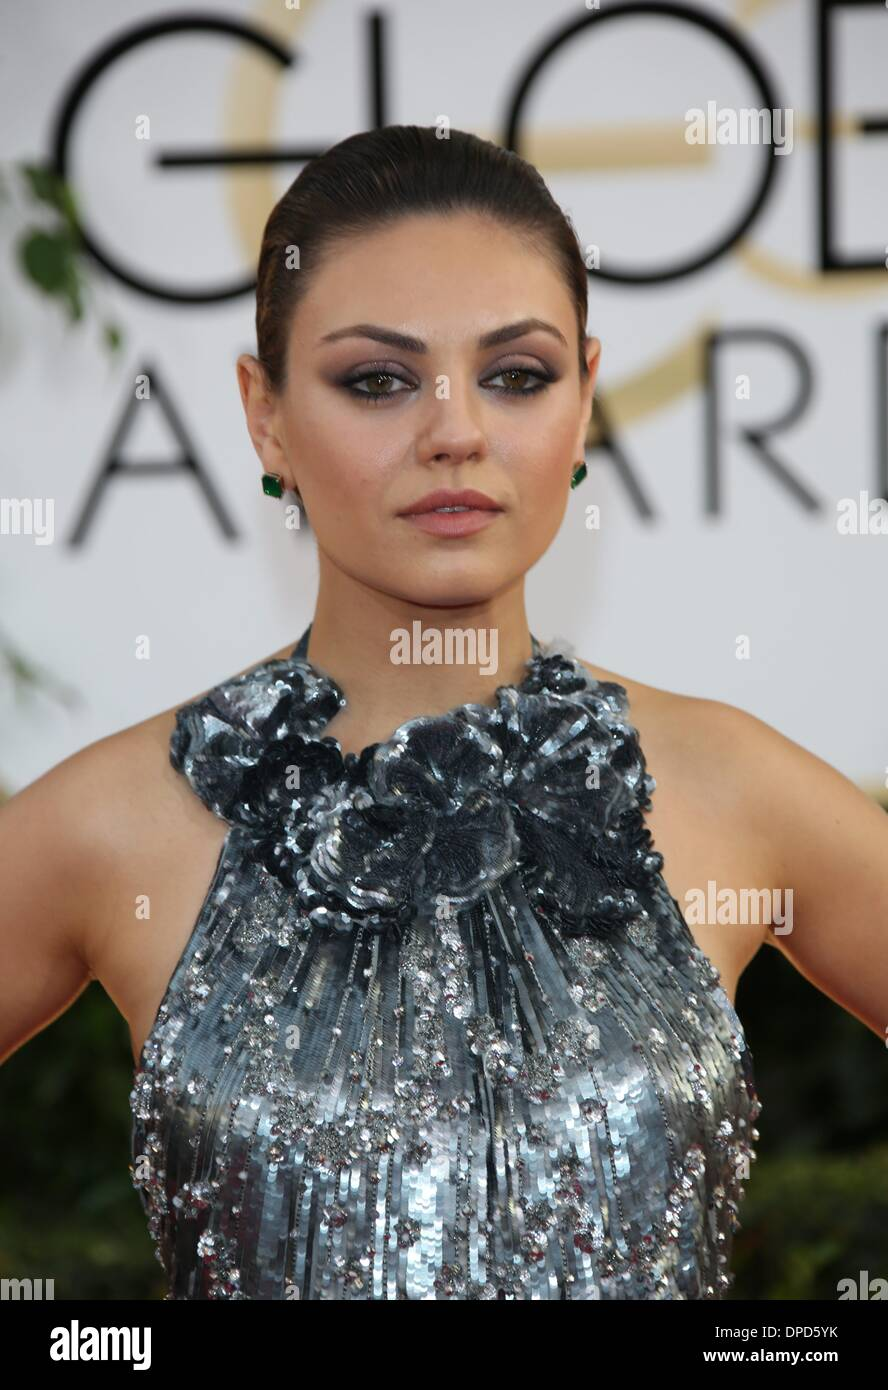 Los Angeles, USA. 12th January 2014. Mila Kunis attends the 71st Annual Golden Globe Awards aka Golden Globes at Stock Photo